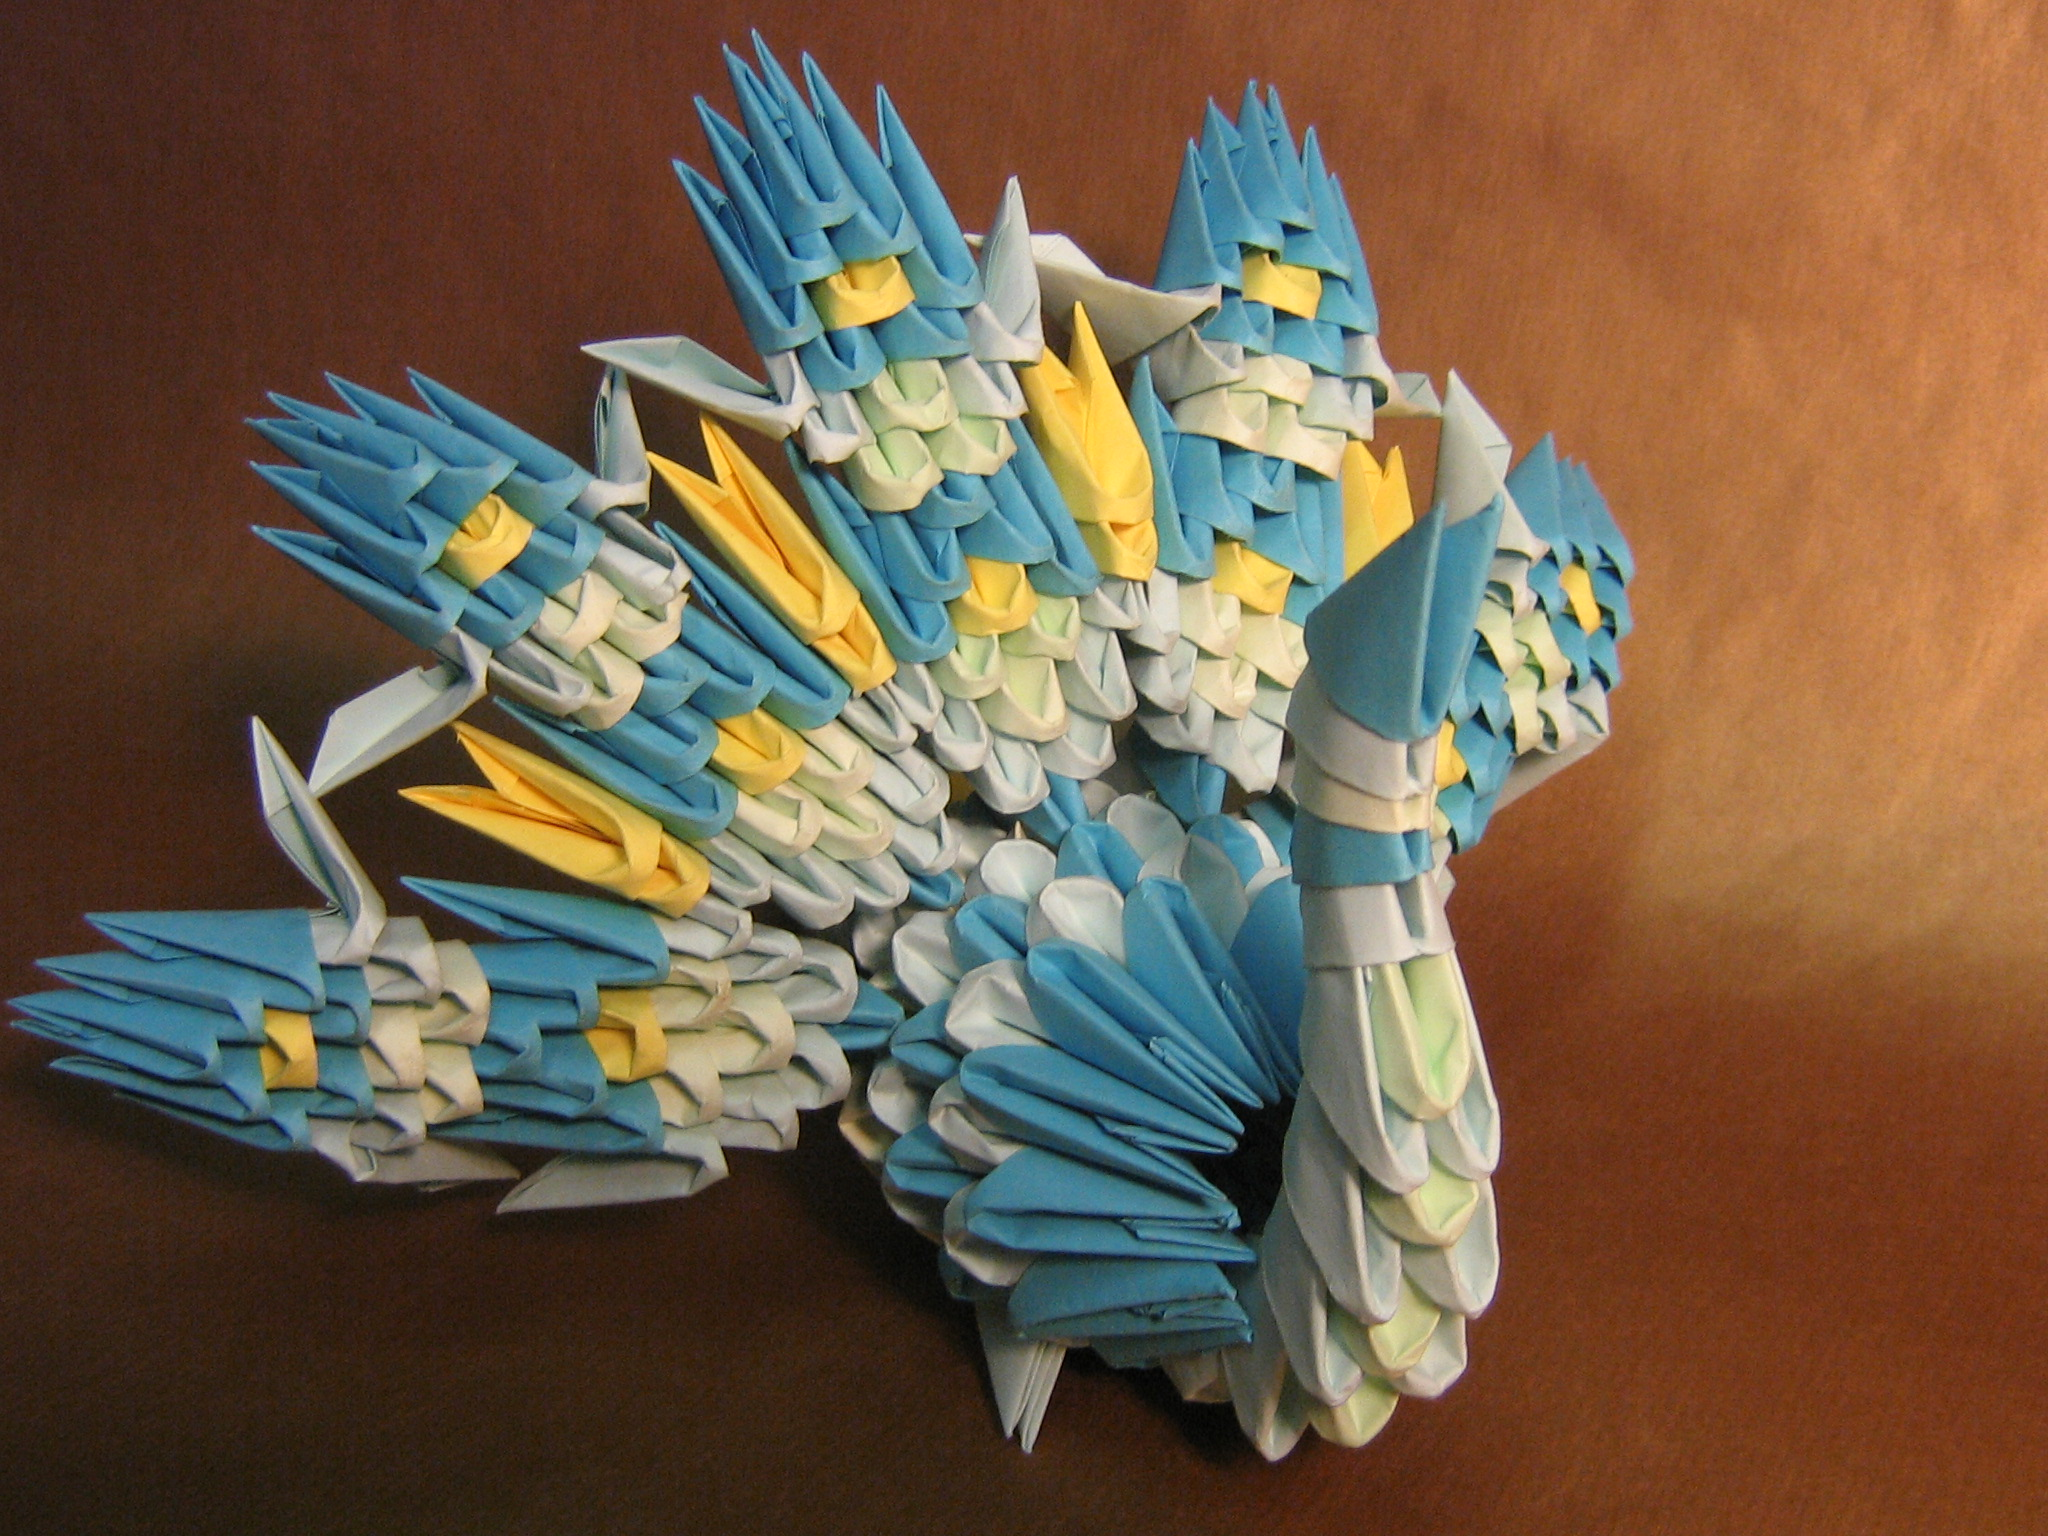 small peacock 3D ORIGAMI by aarrnnoo0123 on DeviantArt - photo#22